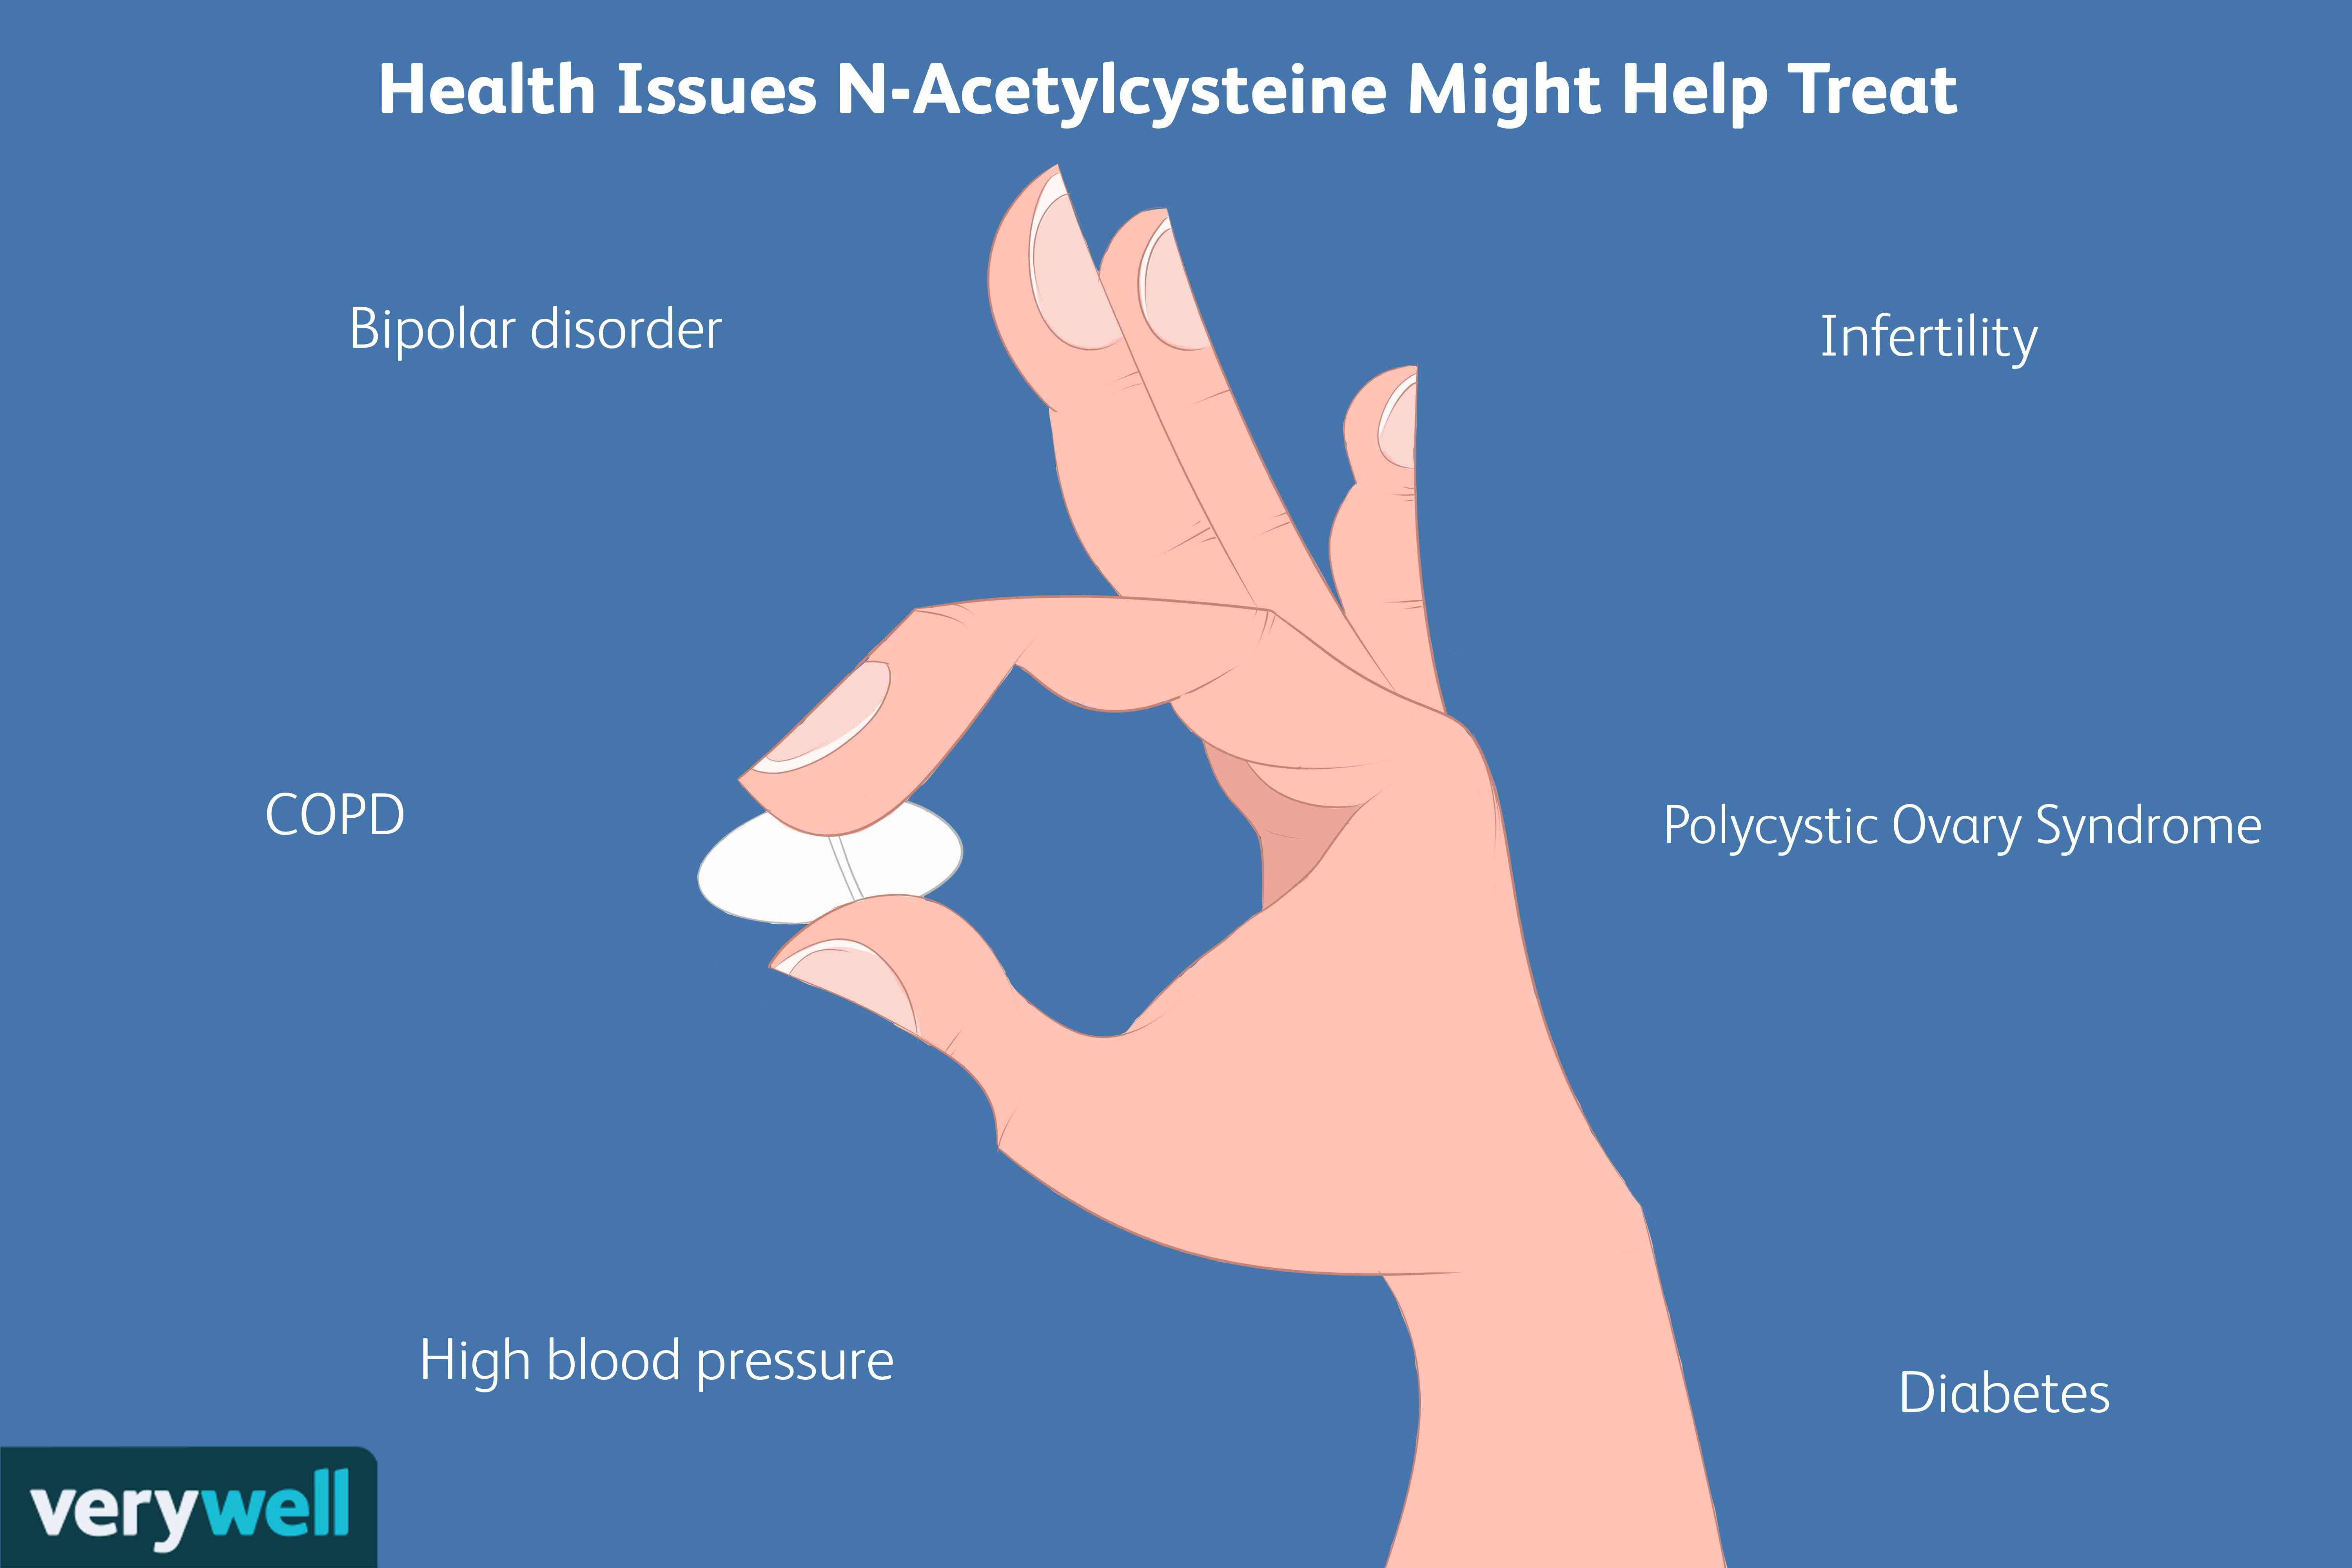 Health Issues N-Acetylcysteine Might Help Treat